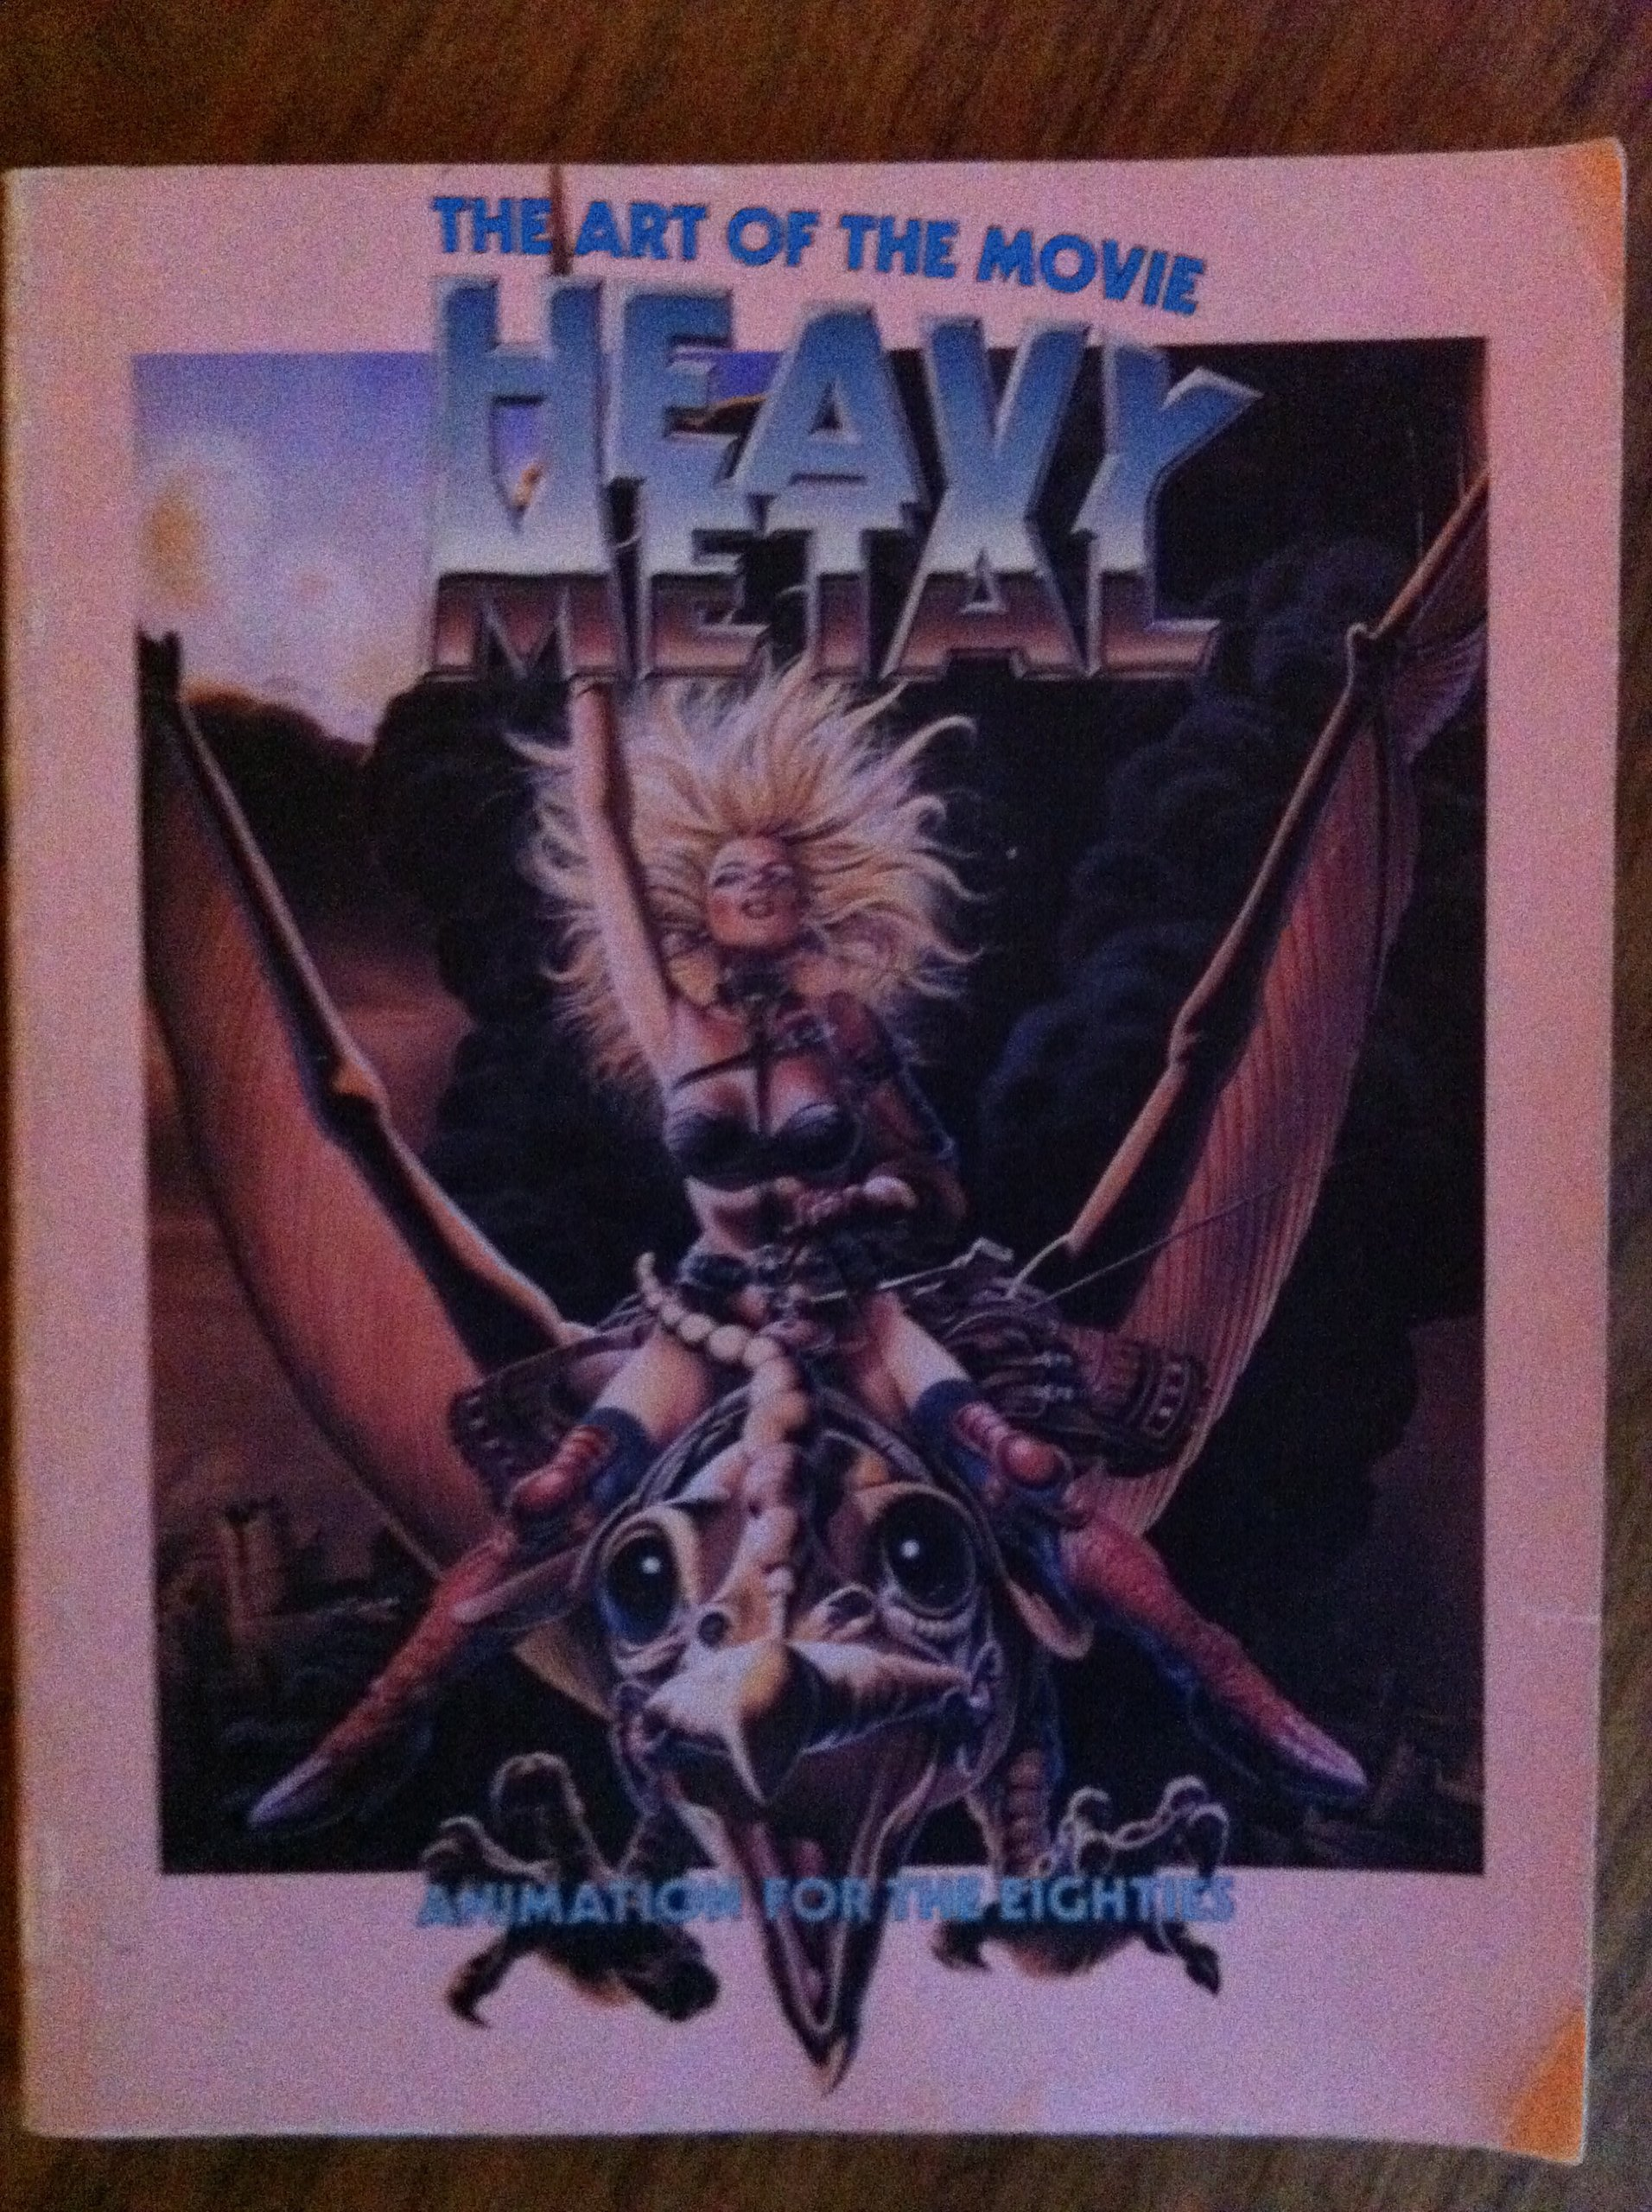 The Art of Heavy Metal, the Movie: Animation for the Eighties: Amazon.es: Macek, Carl: Libros en idiomas extranjeros